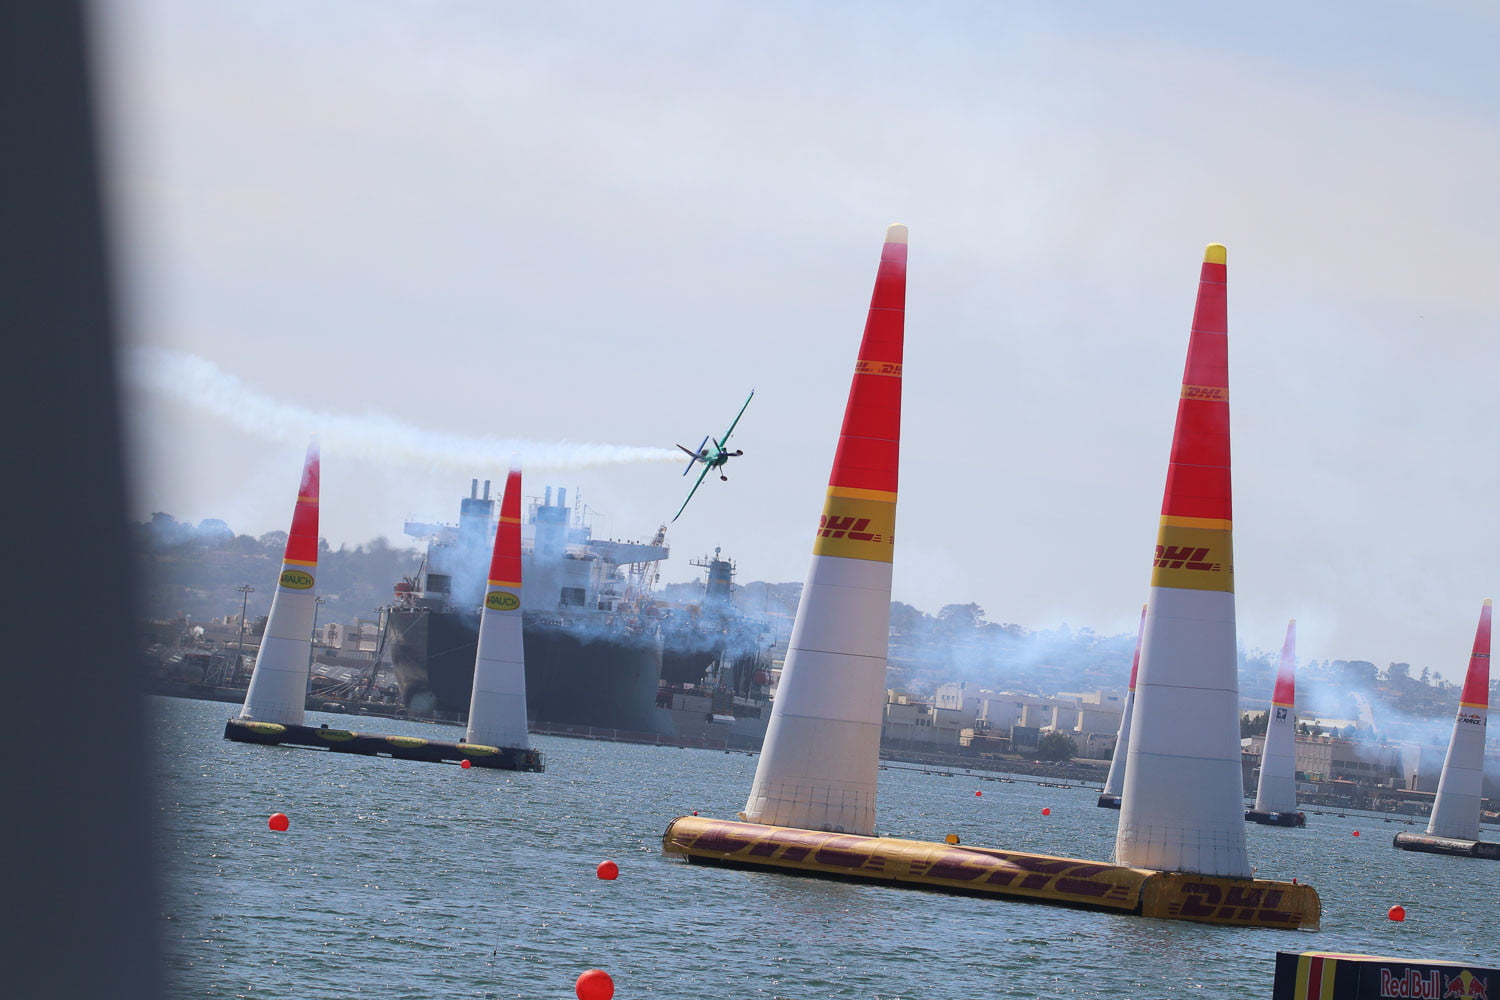 photographing red bull air race canon t7i san diego 10